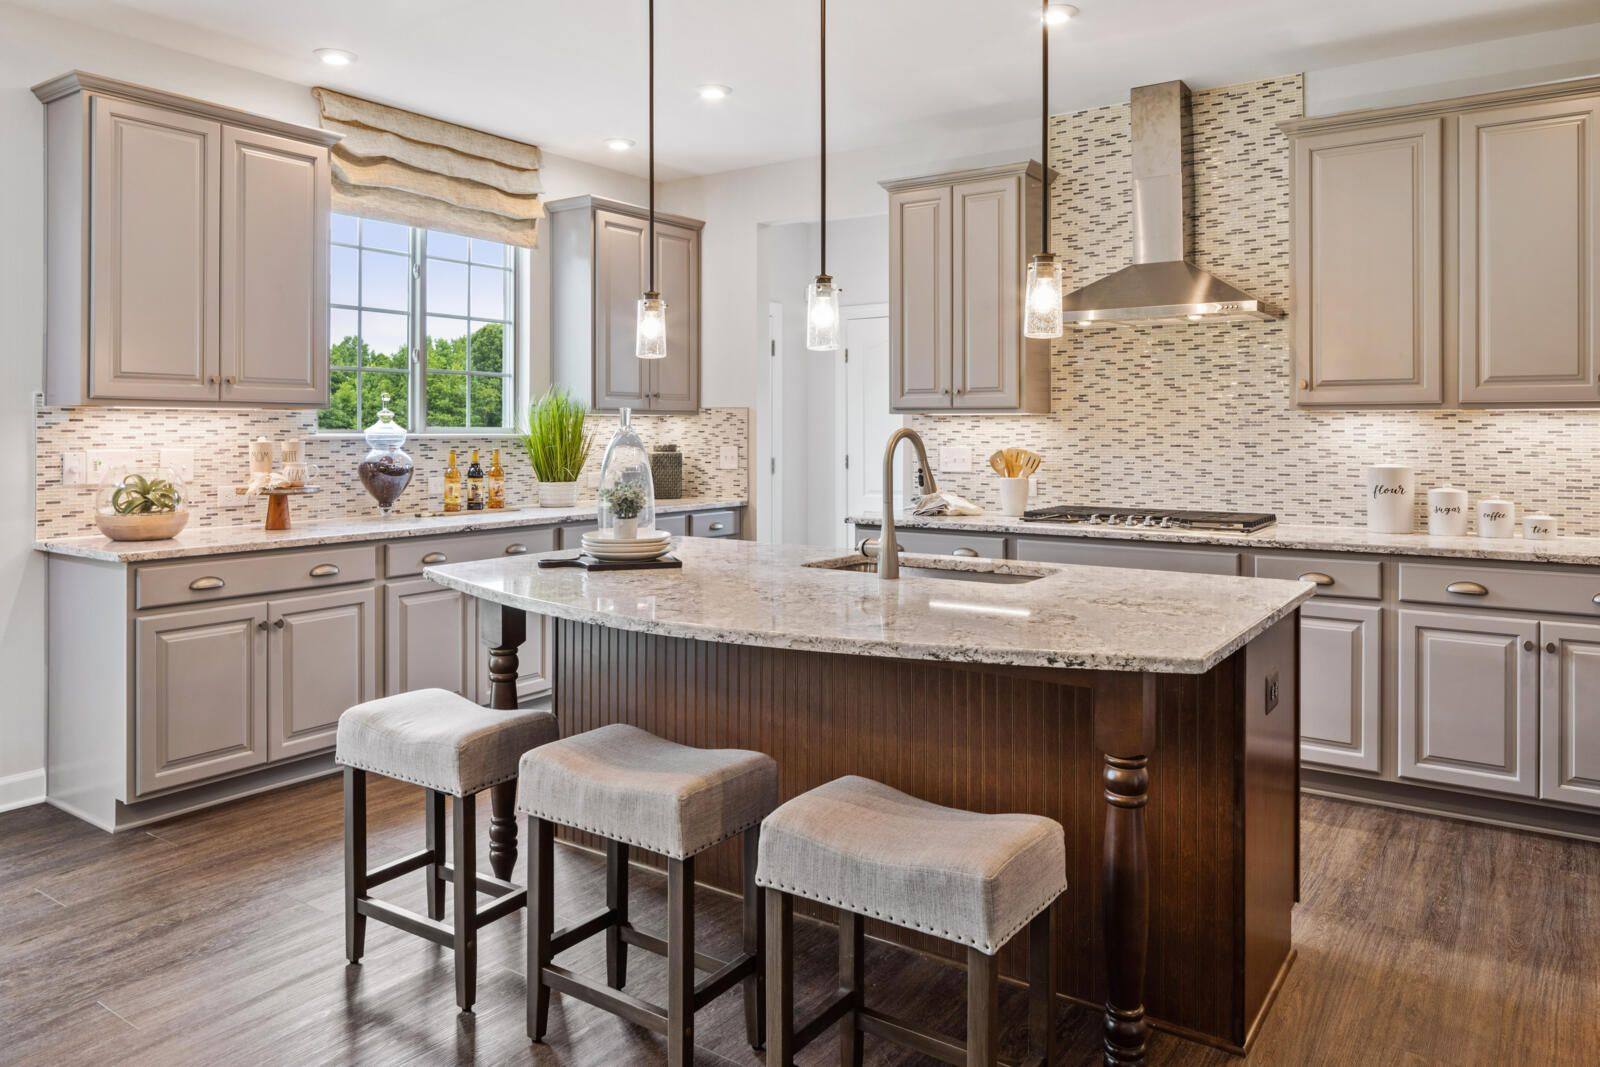 Kitchen With Painted Cabinets In 2020 With Images Kitchen Inspirations Painting Kitchen Cabinets